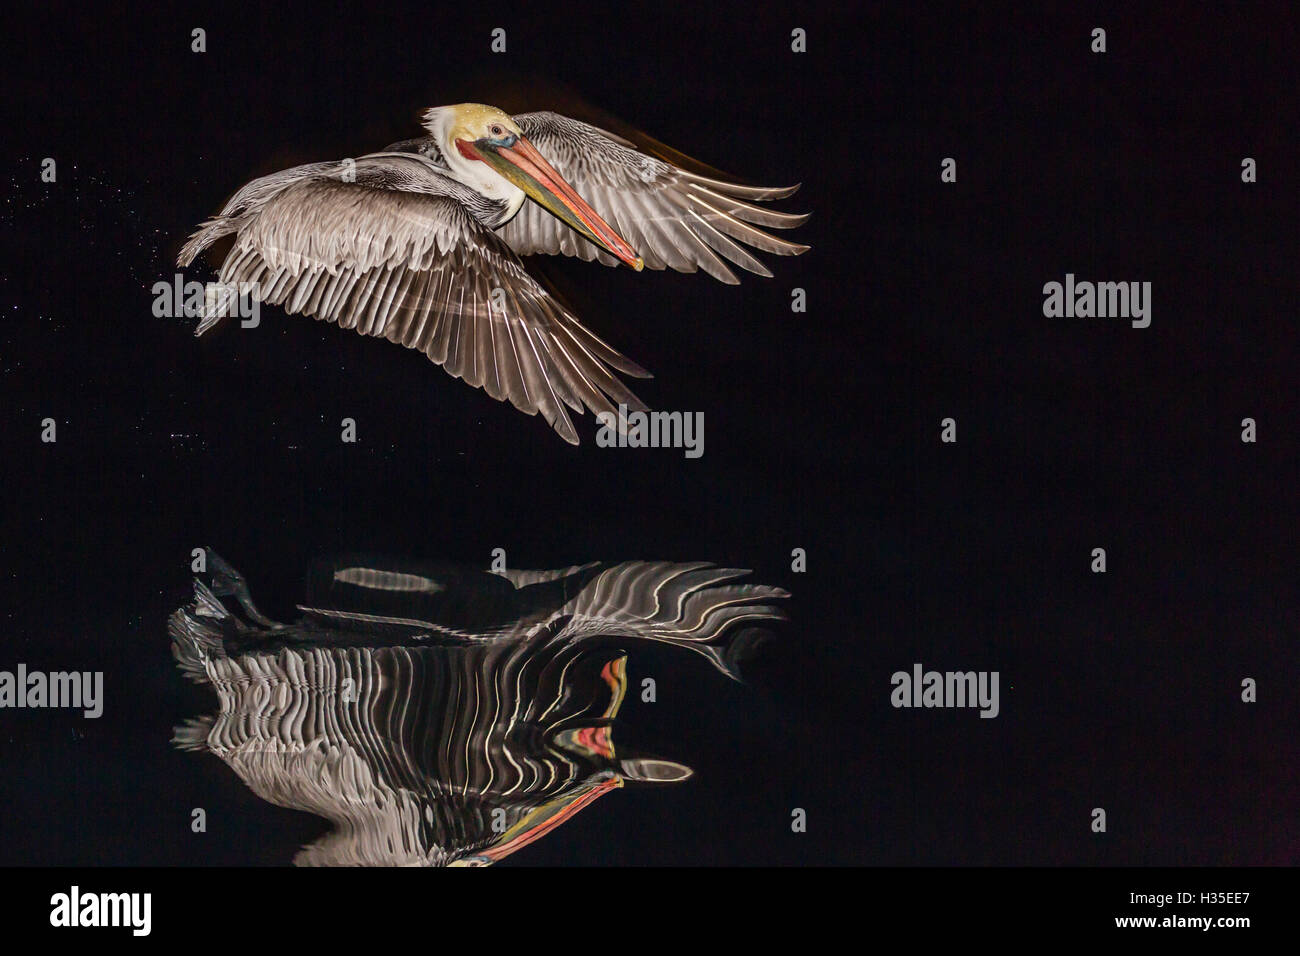 An adult brown pelican (Pelecanus occidentalis) at night near Isla Santa Catalina, Baja California Sur, Mexico - Stock Image